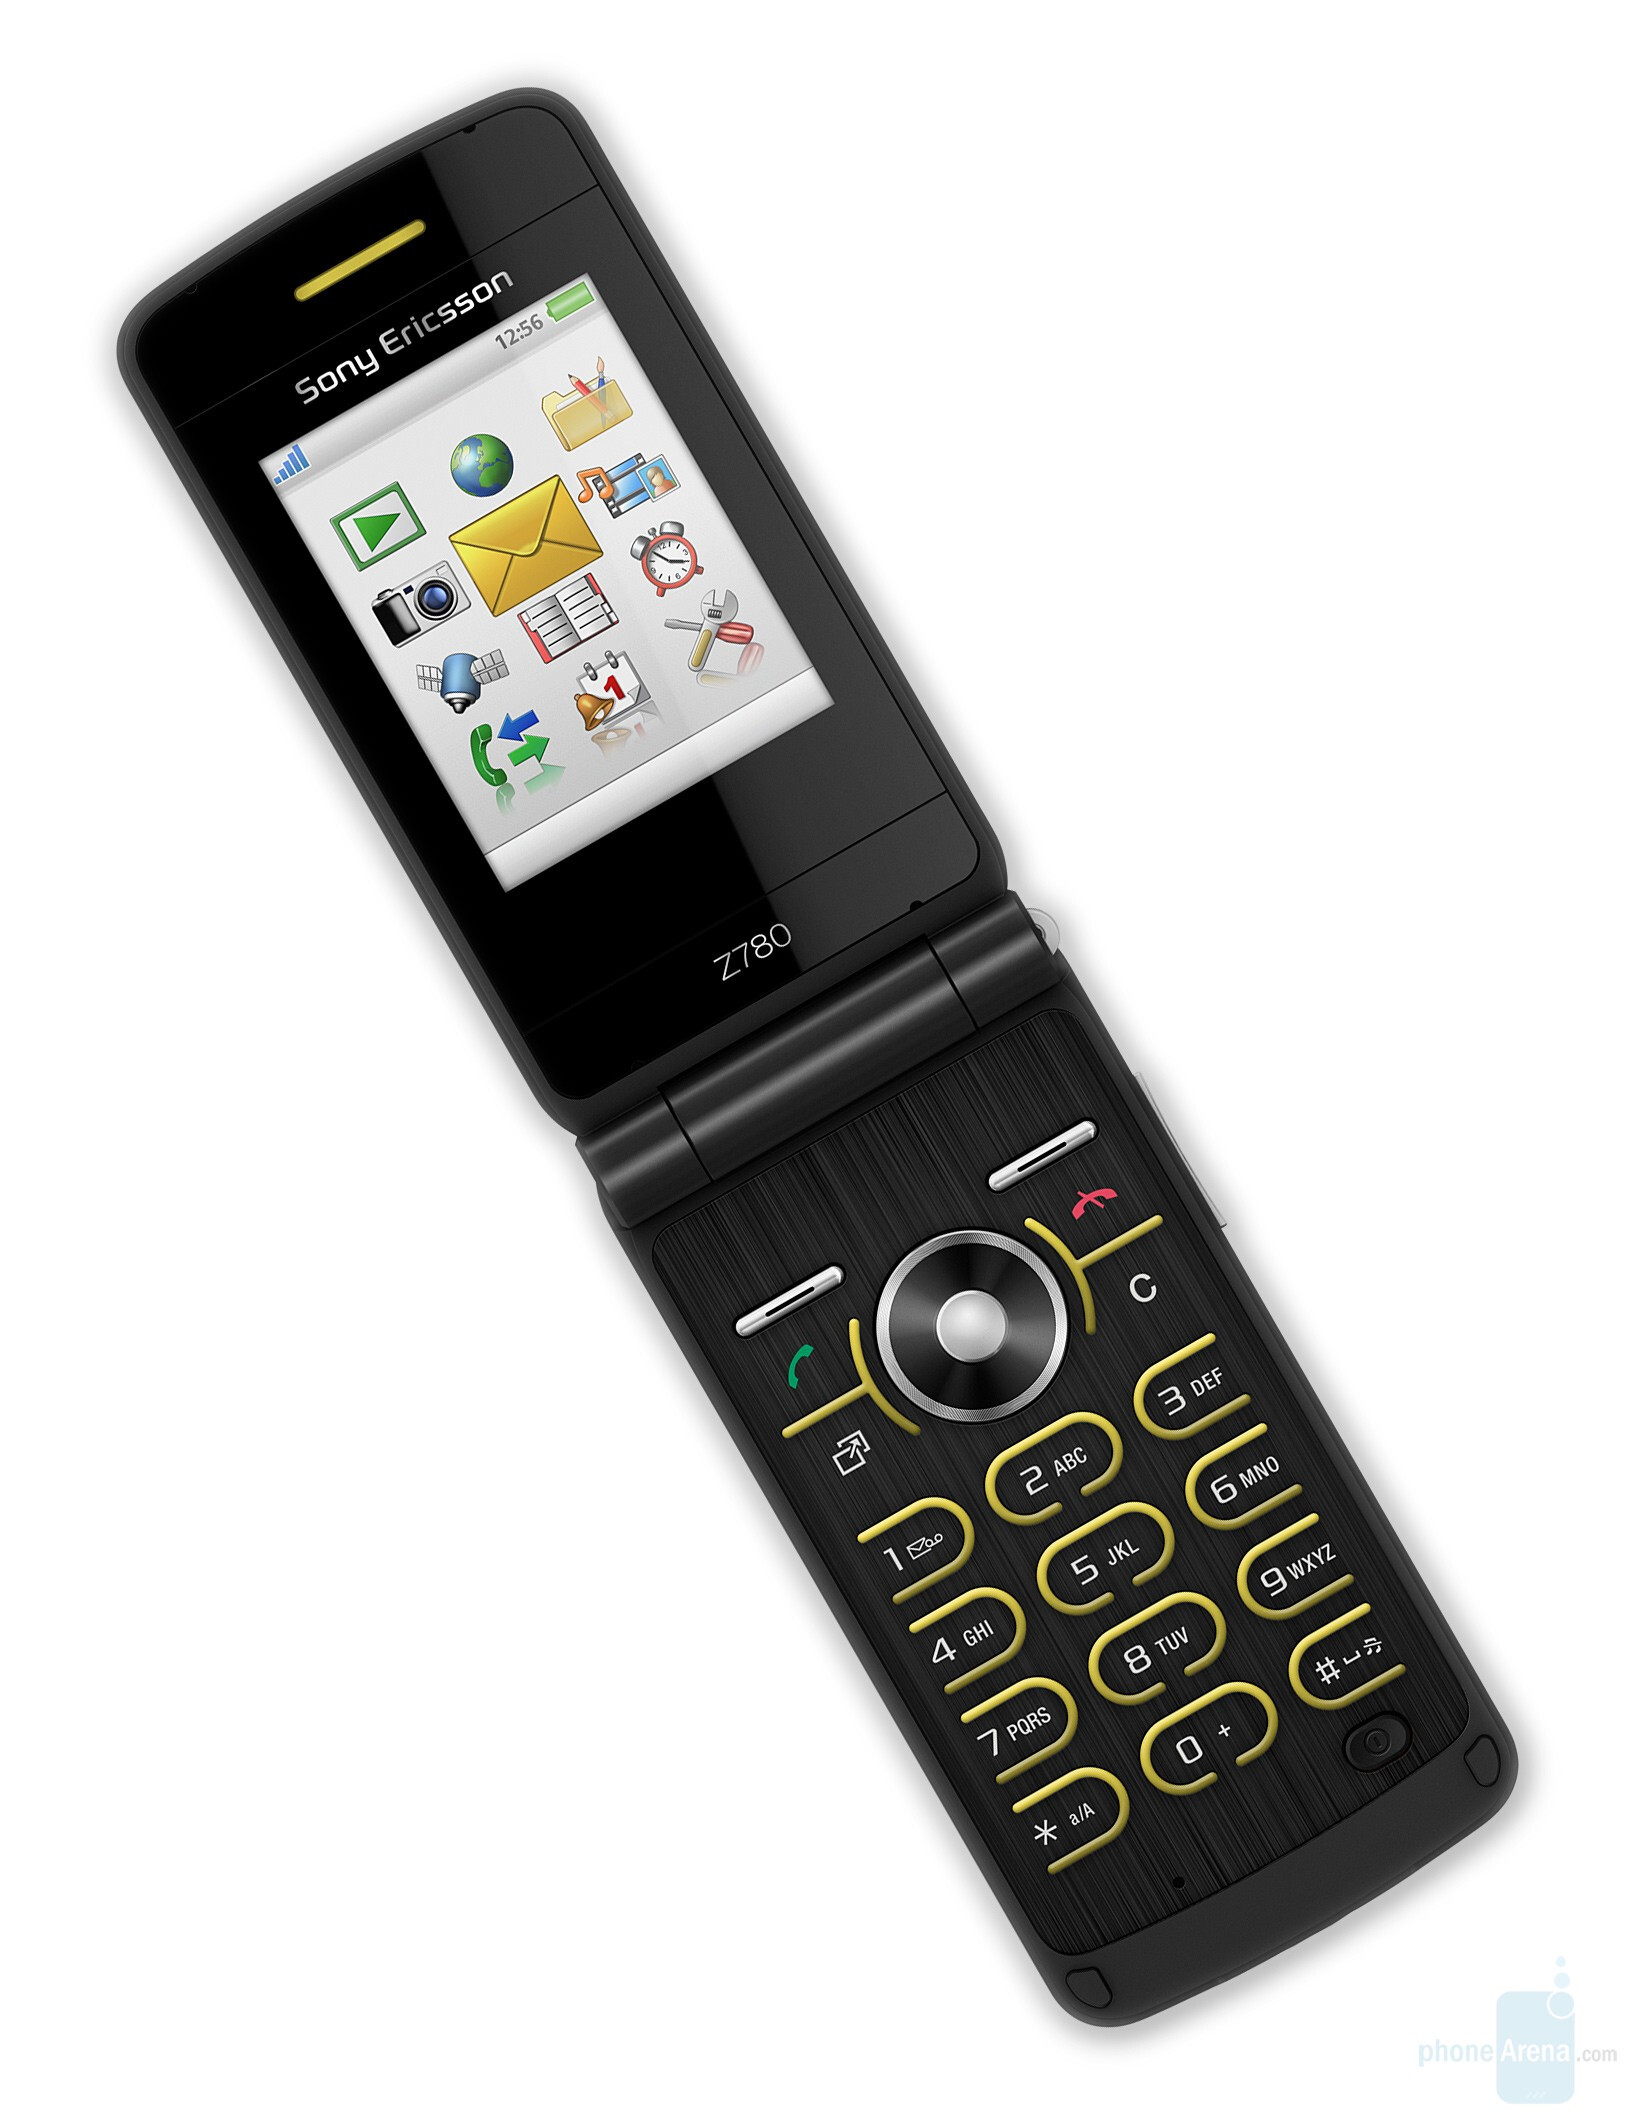 Sony Ericsson announced G502 and Z780